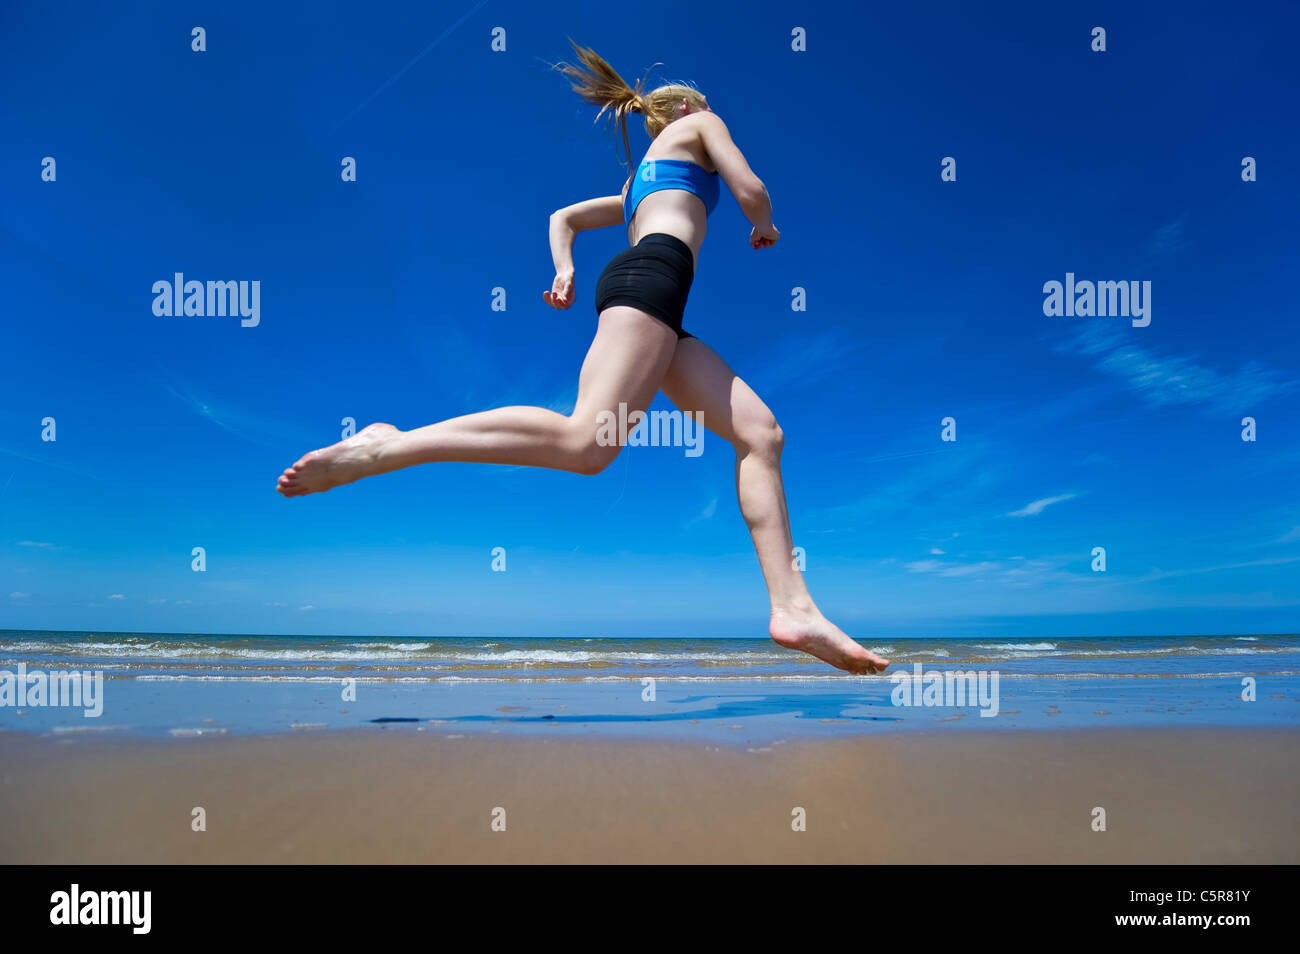 Jogging along a sandy beach at the oceans edge. - Stock Image